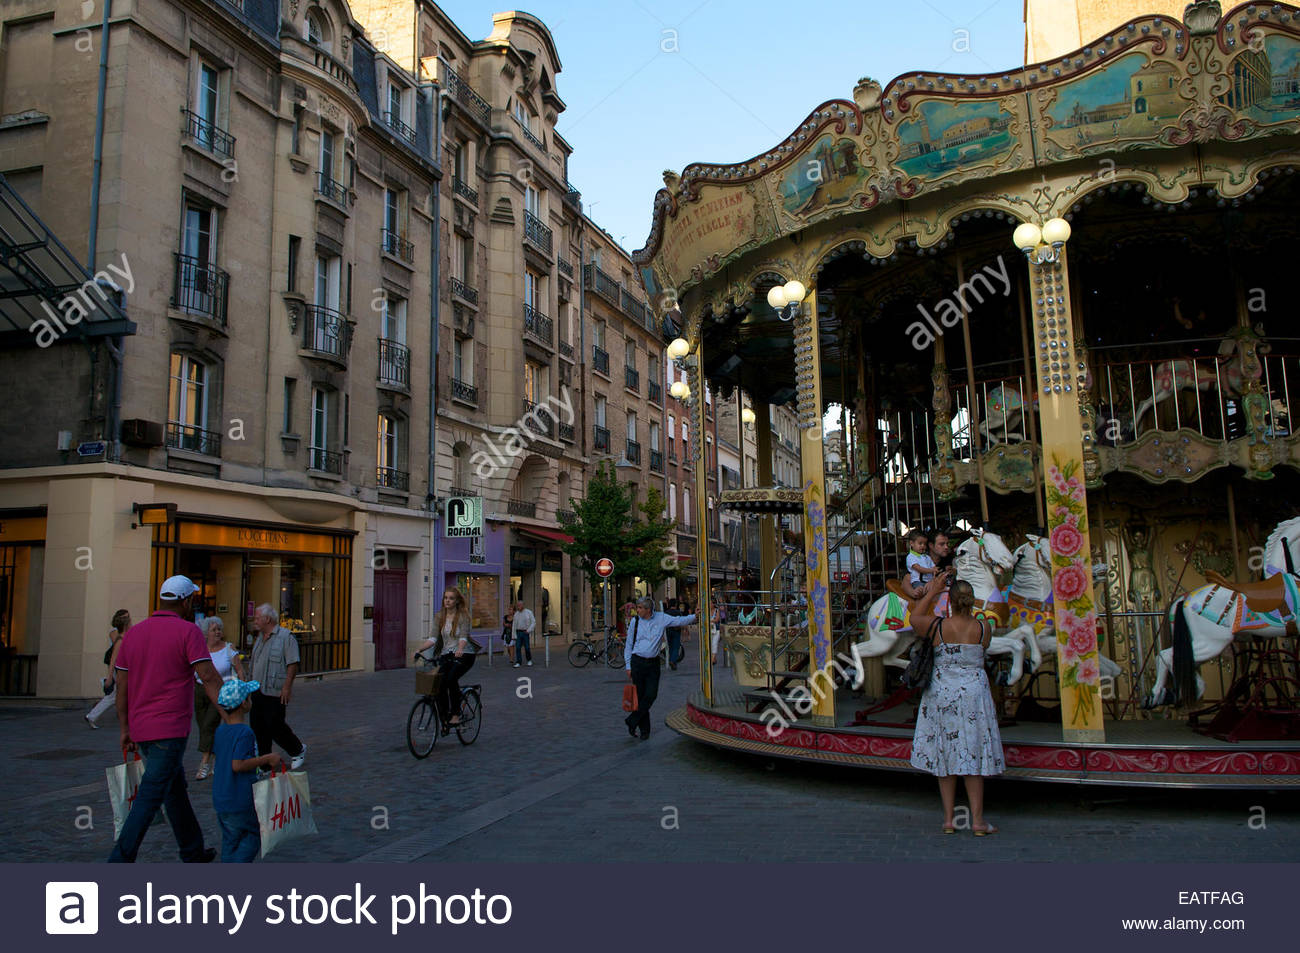 Early evening street scene in Reims, France. - Stock Image